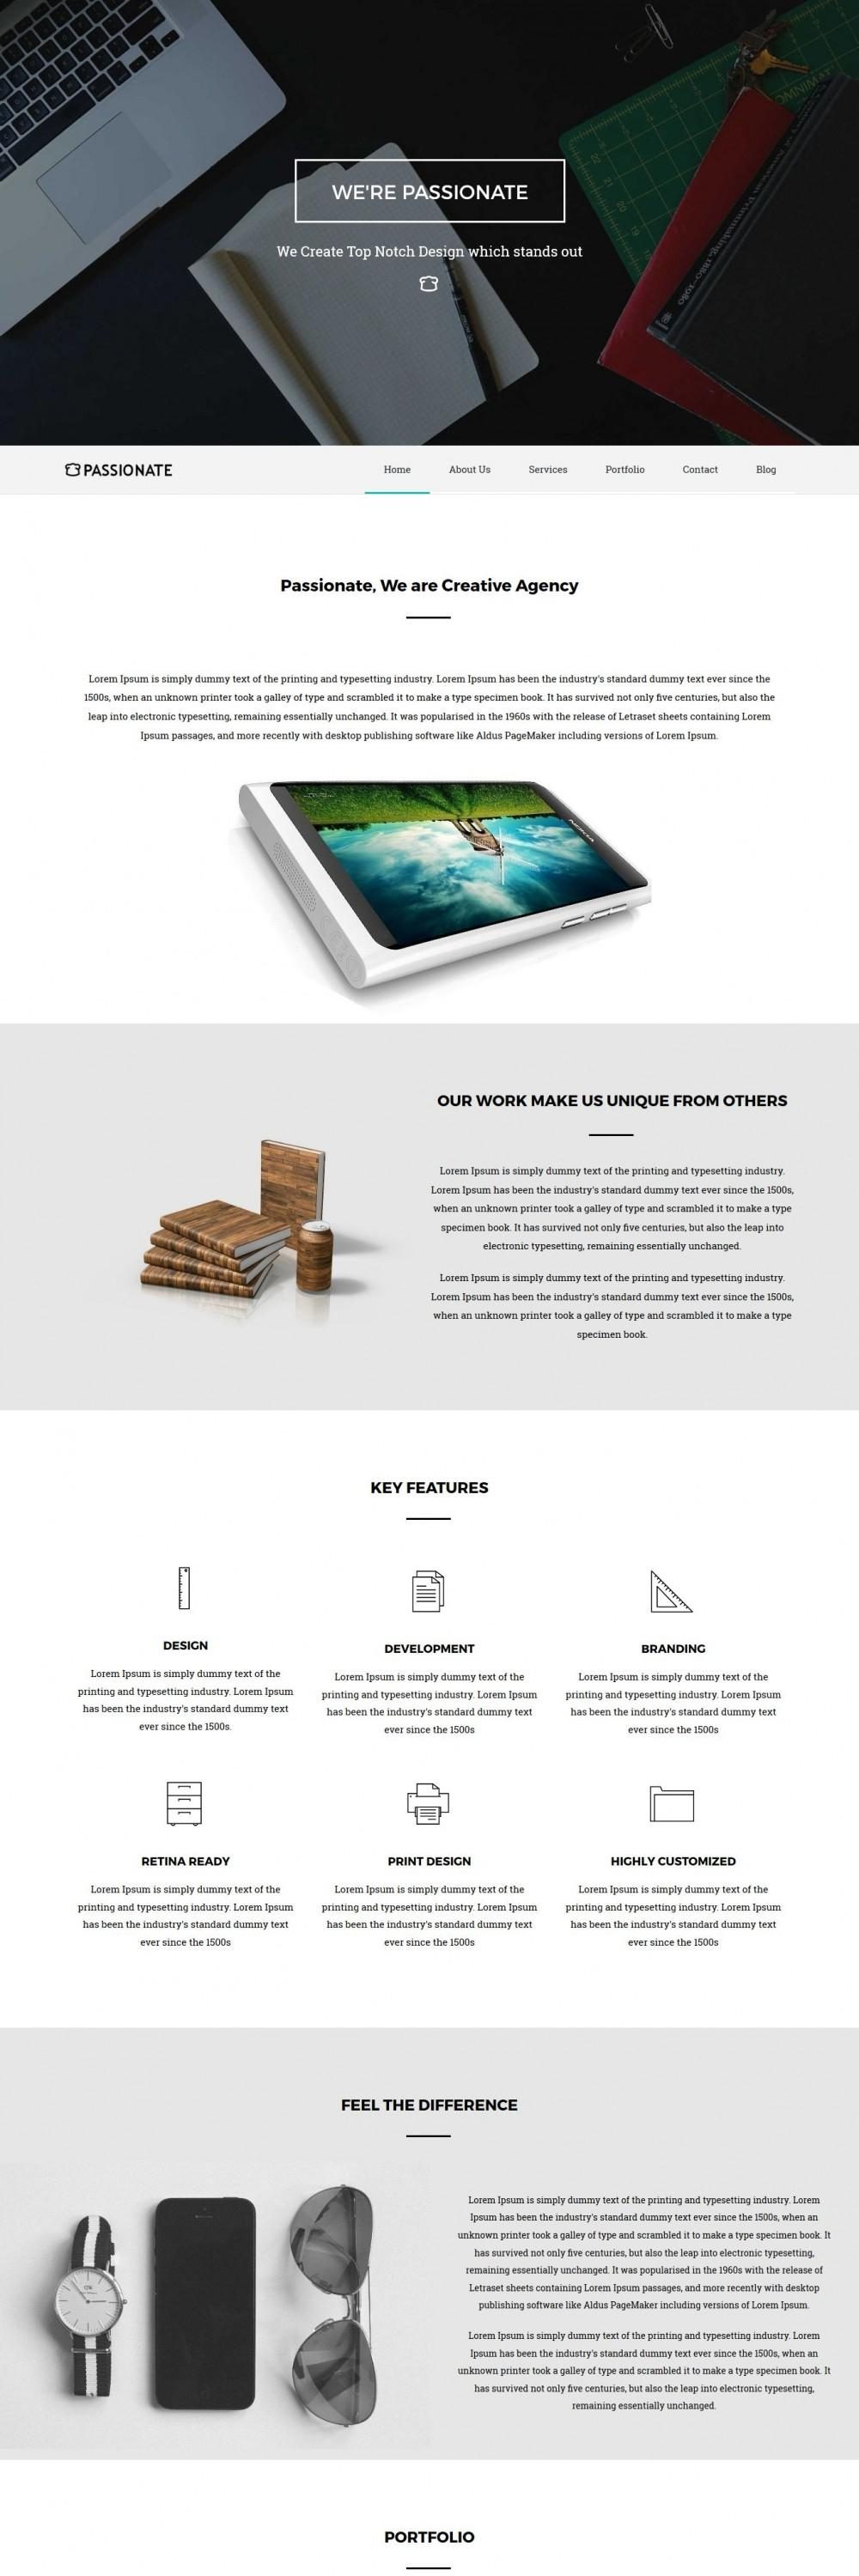 Passionate - Web/App Design Studio WordPress Theme